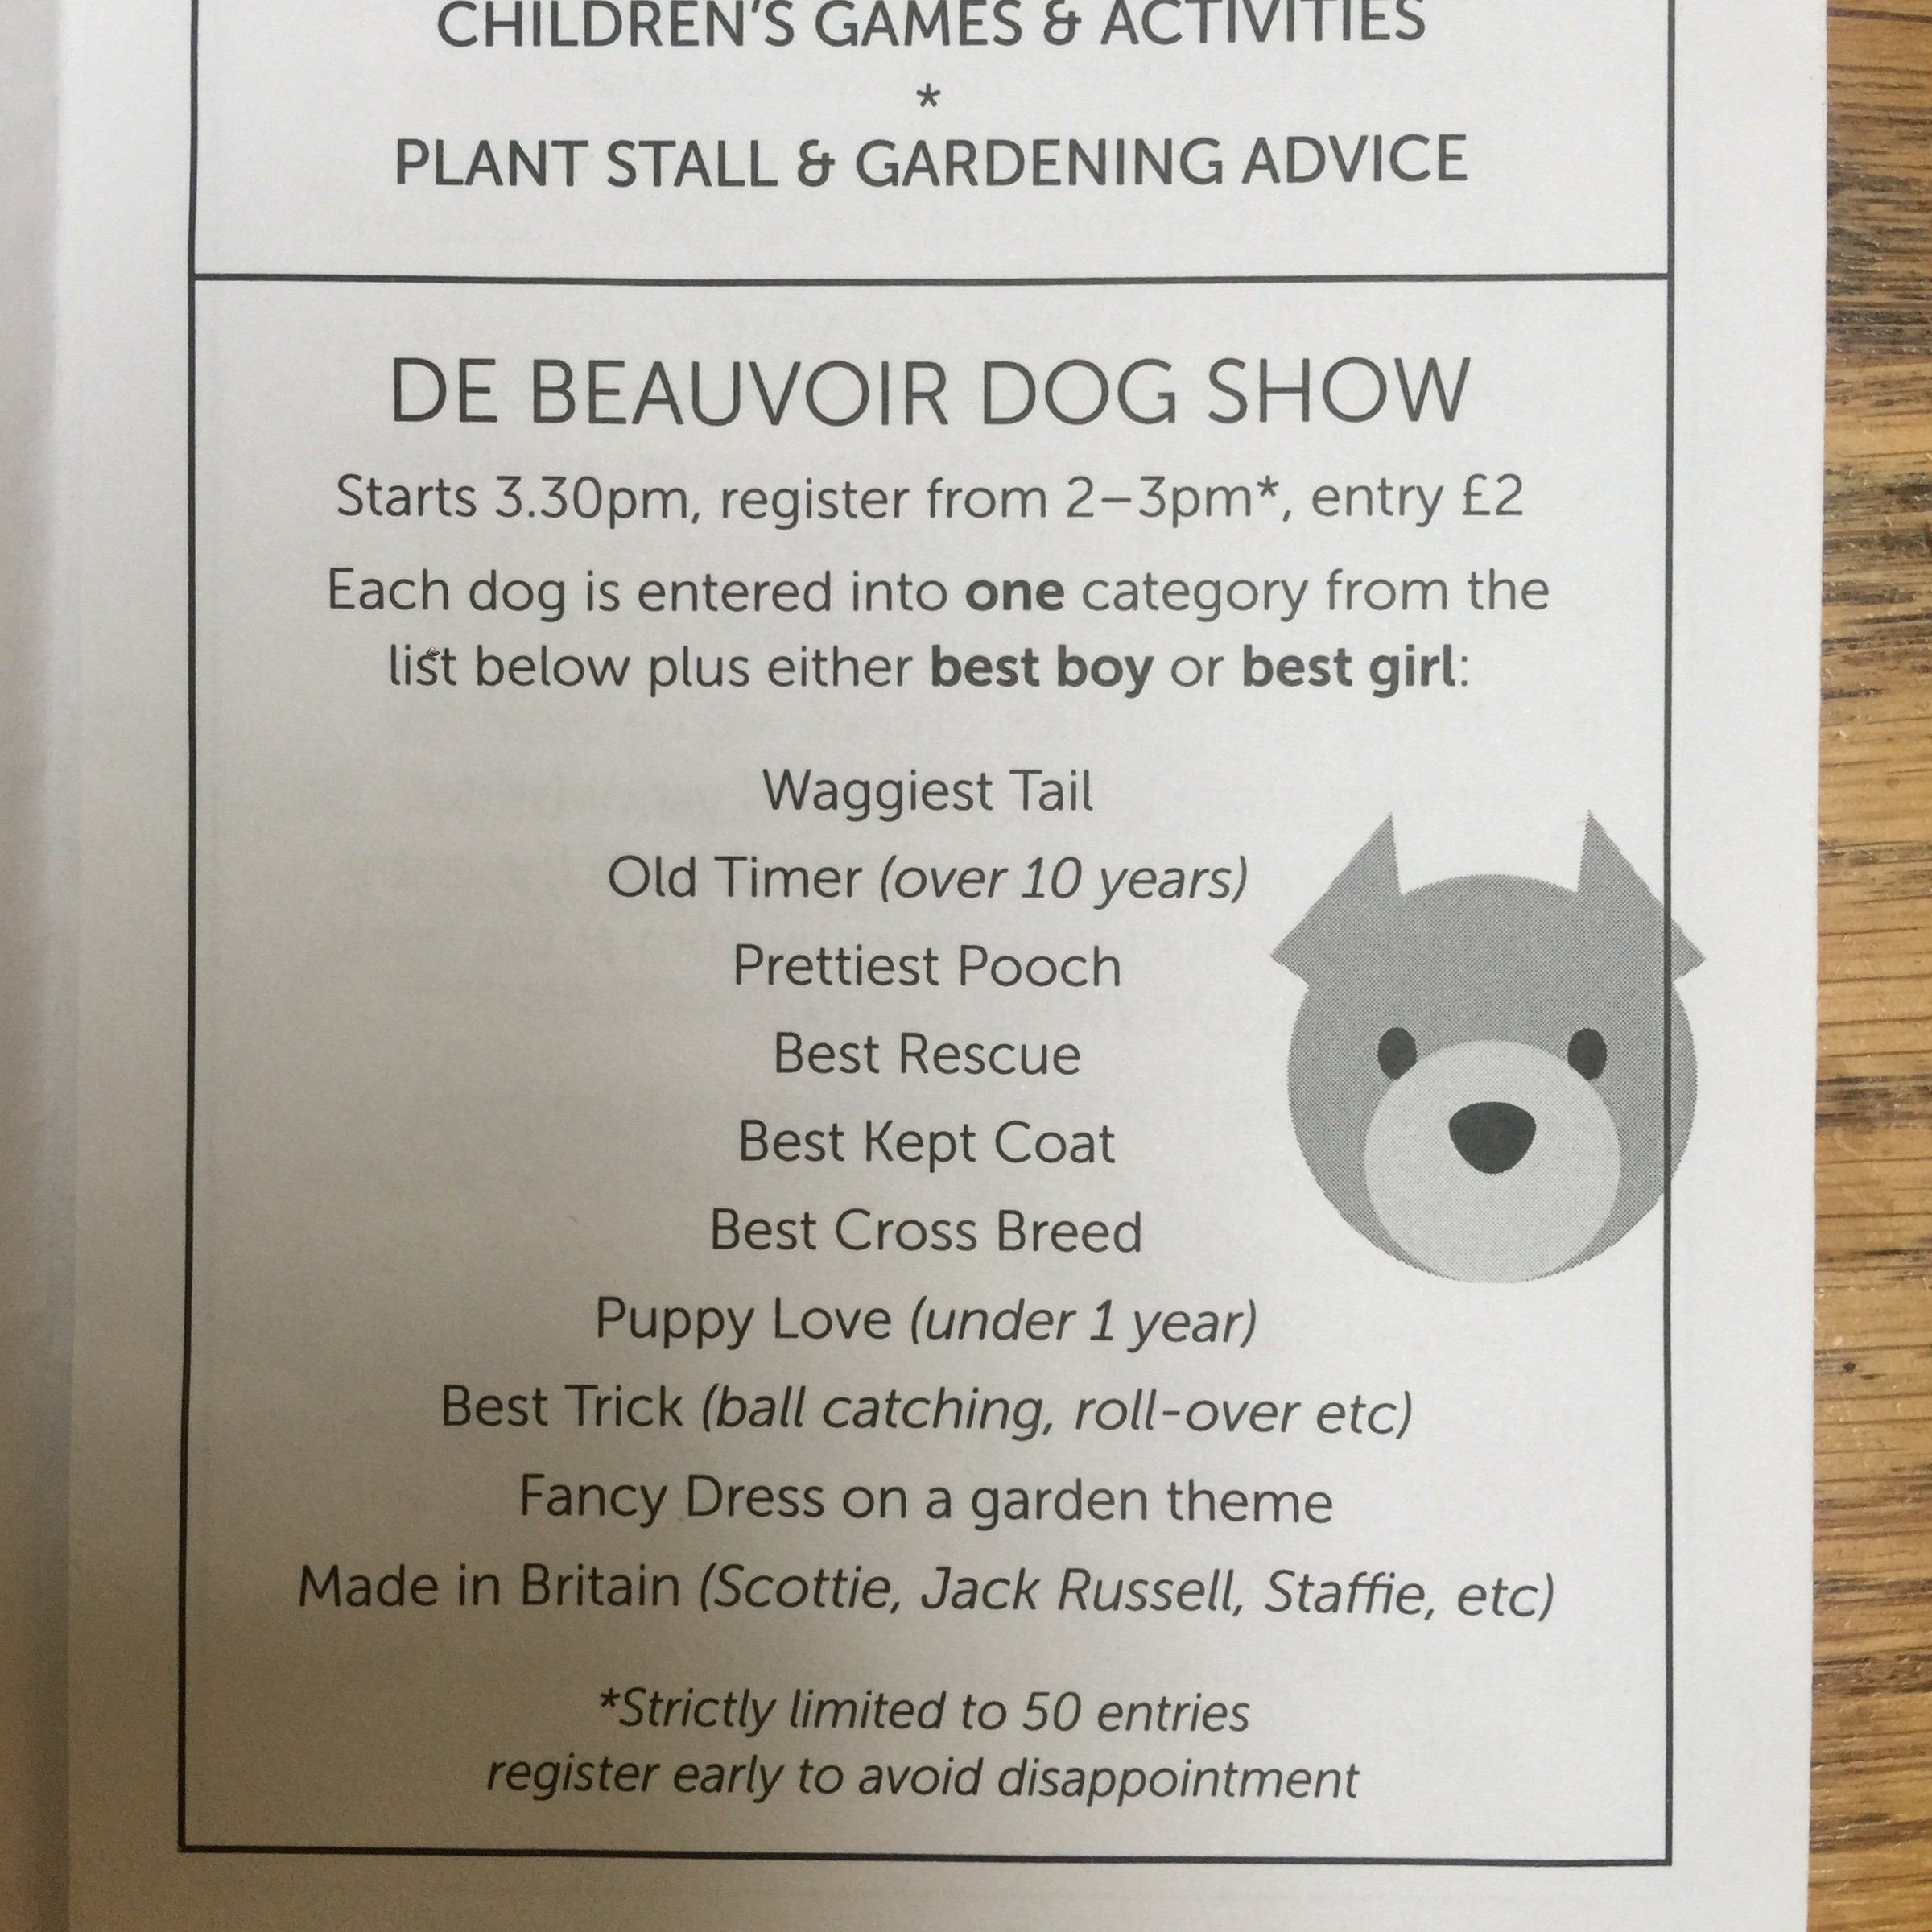 De Beauvoir Dog Show 2018.jpeg